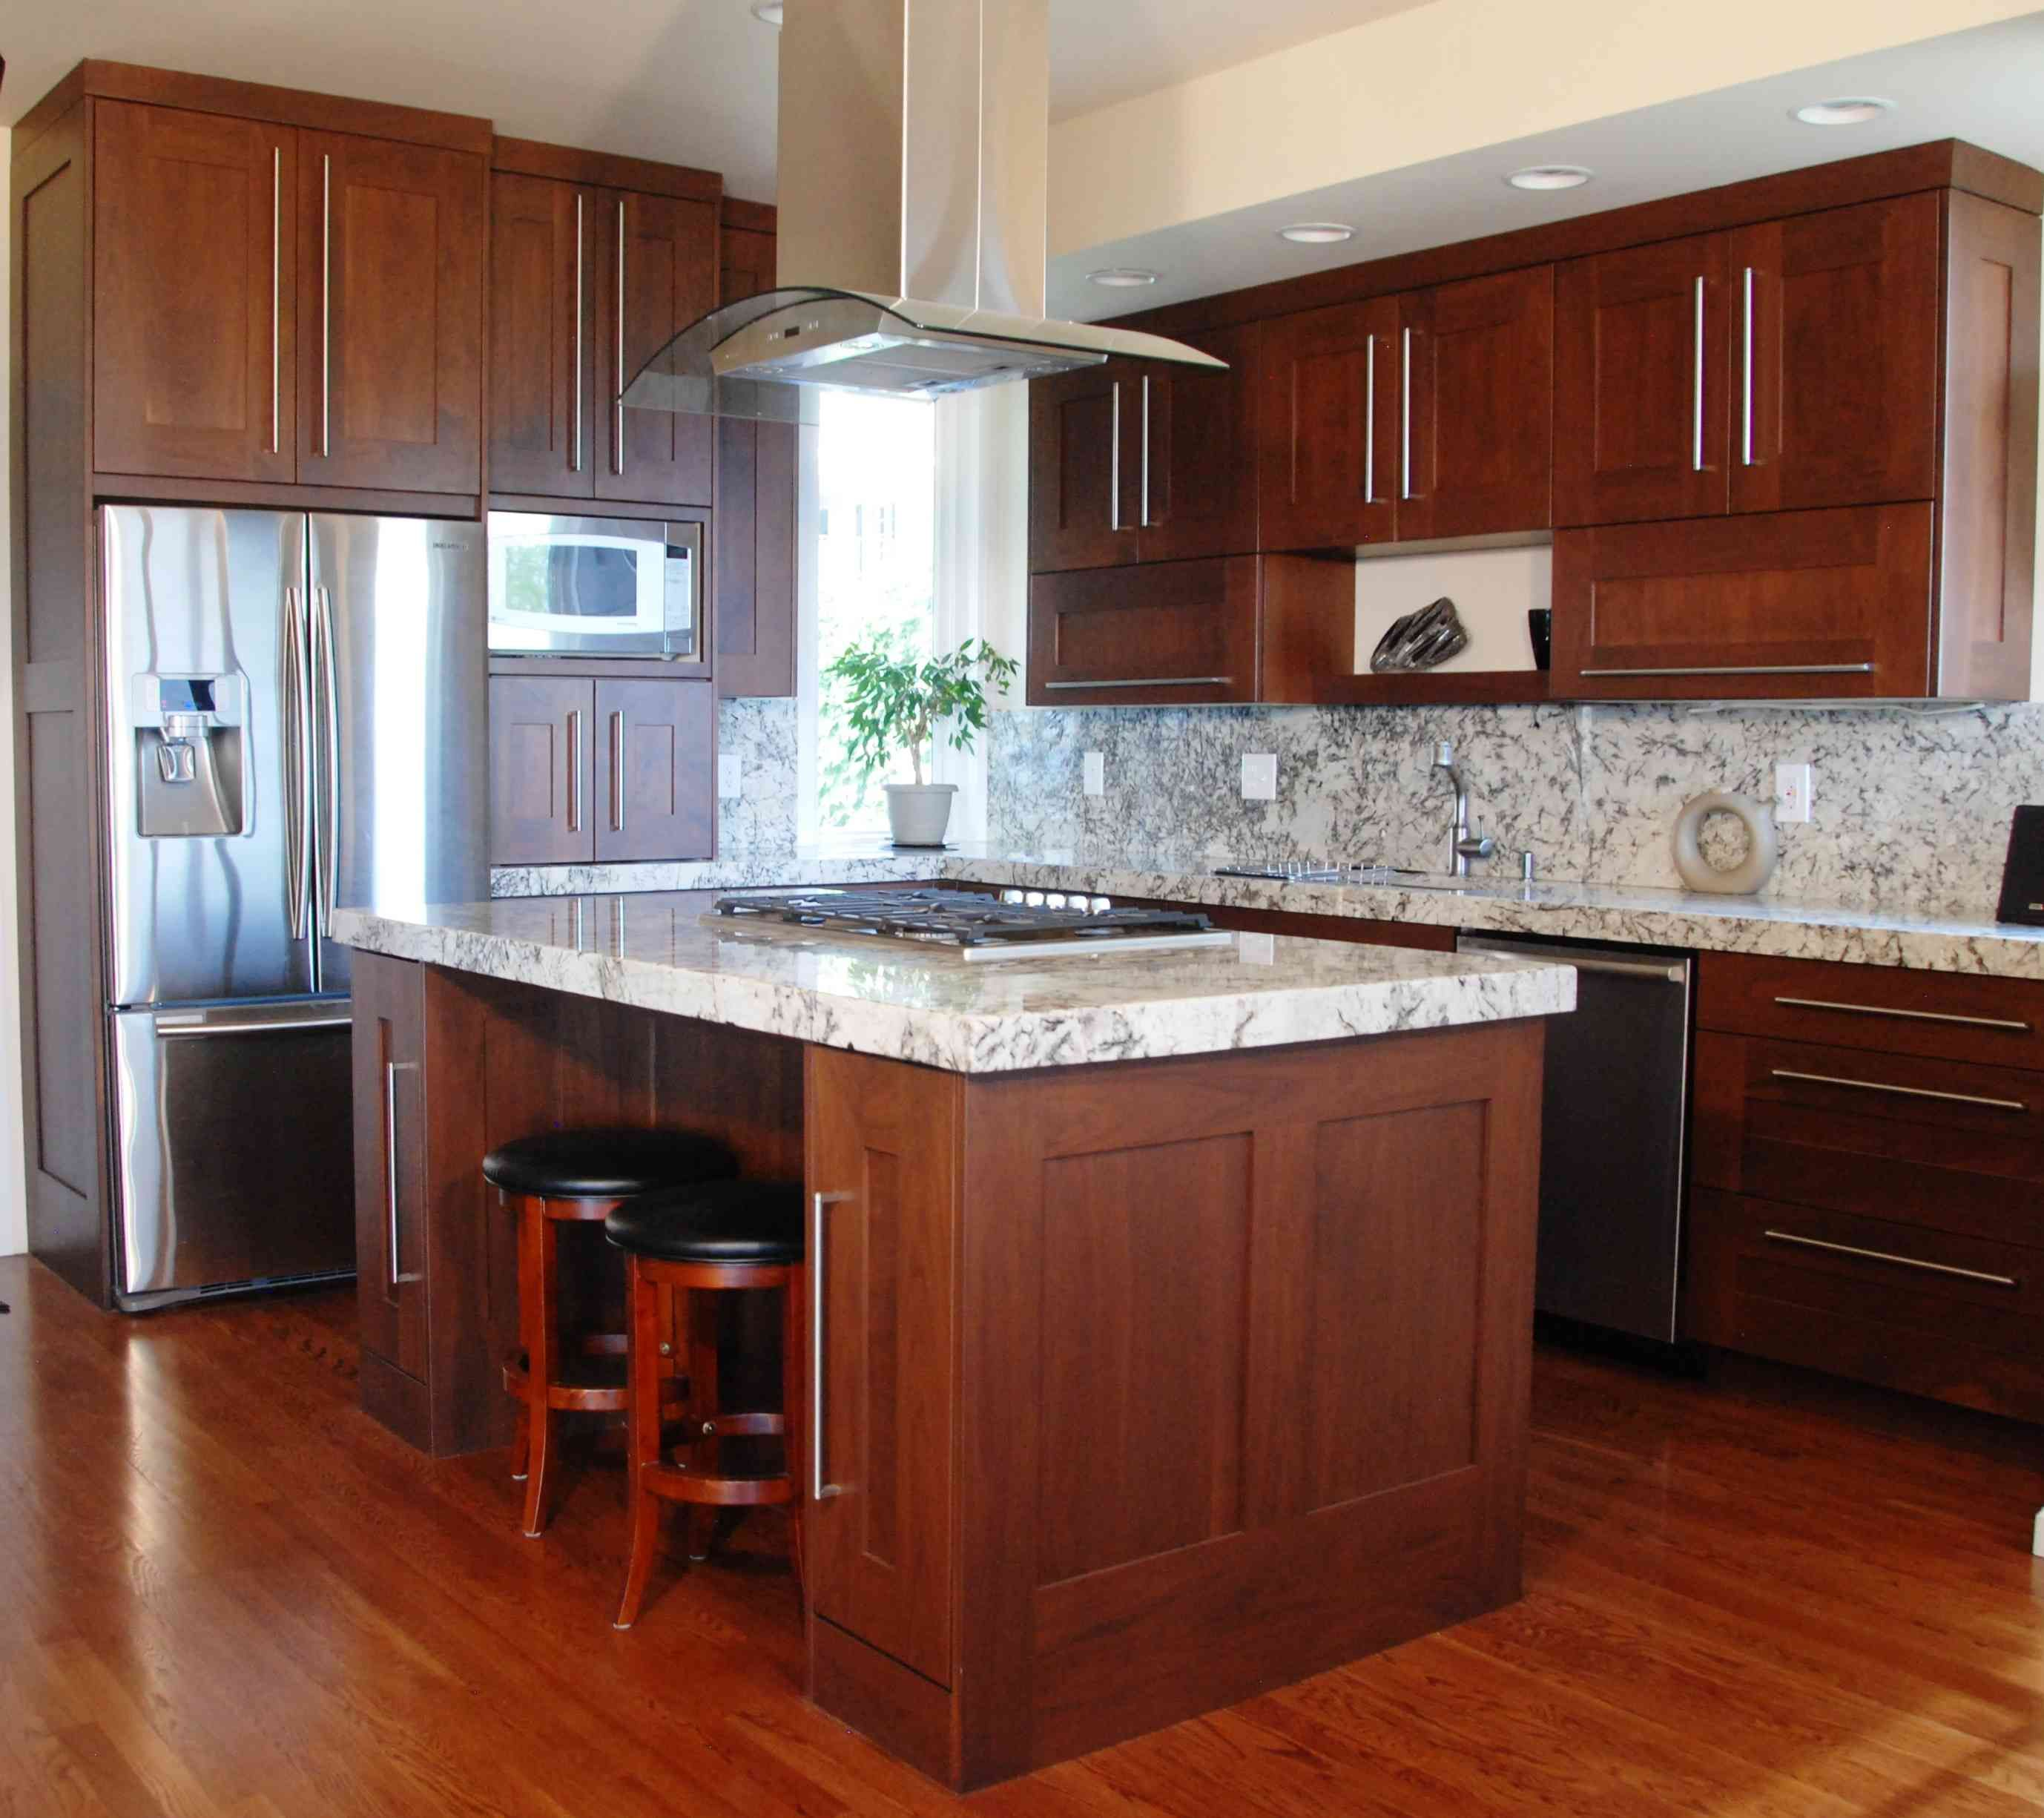 cherry wood cabinets with white granite counters and white island